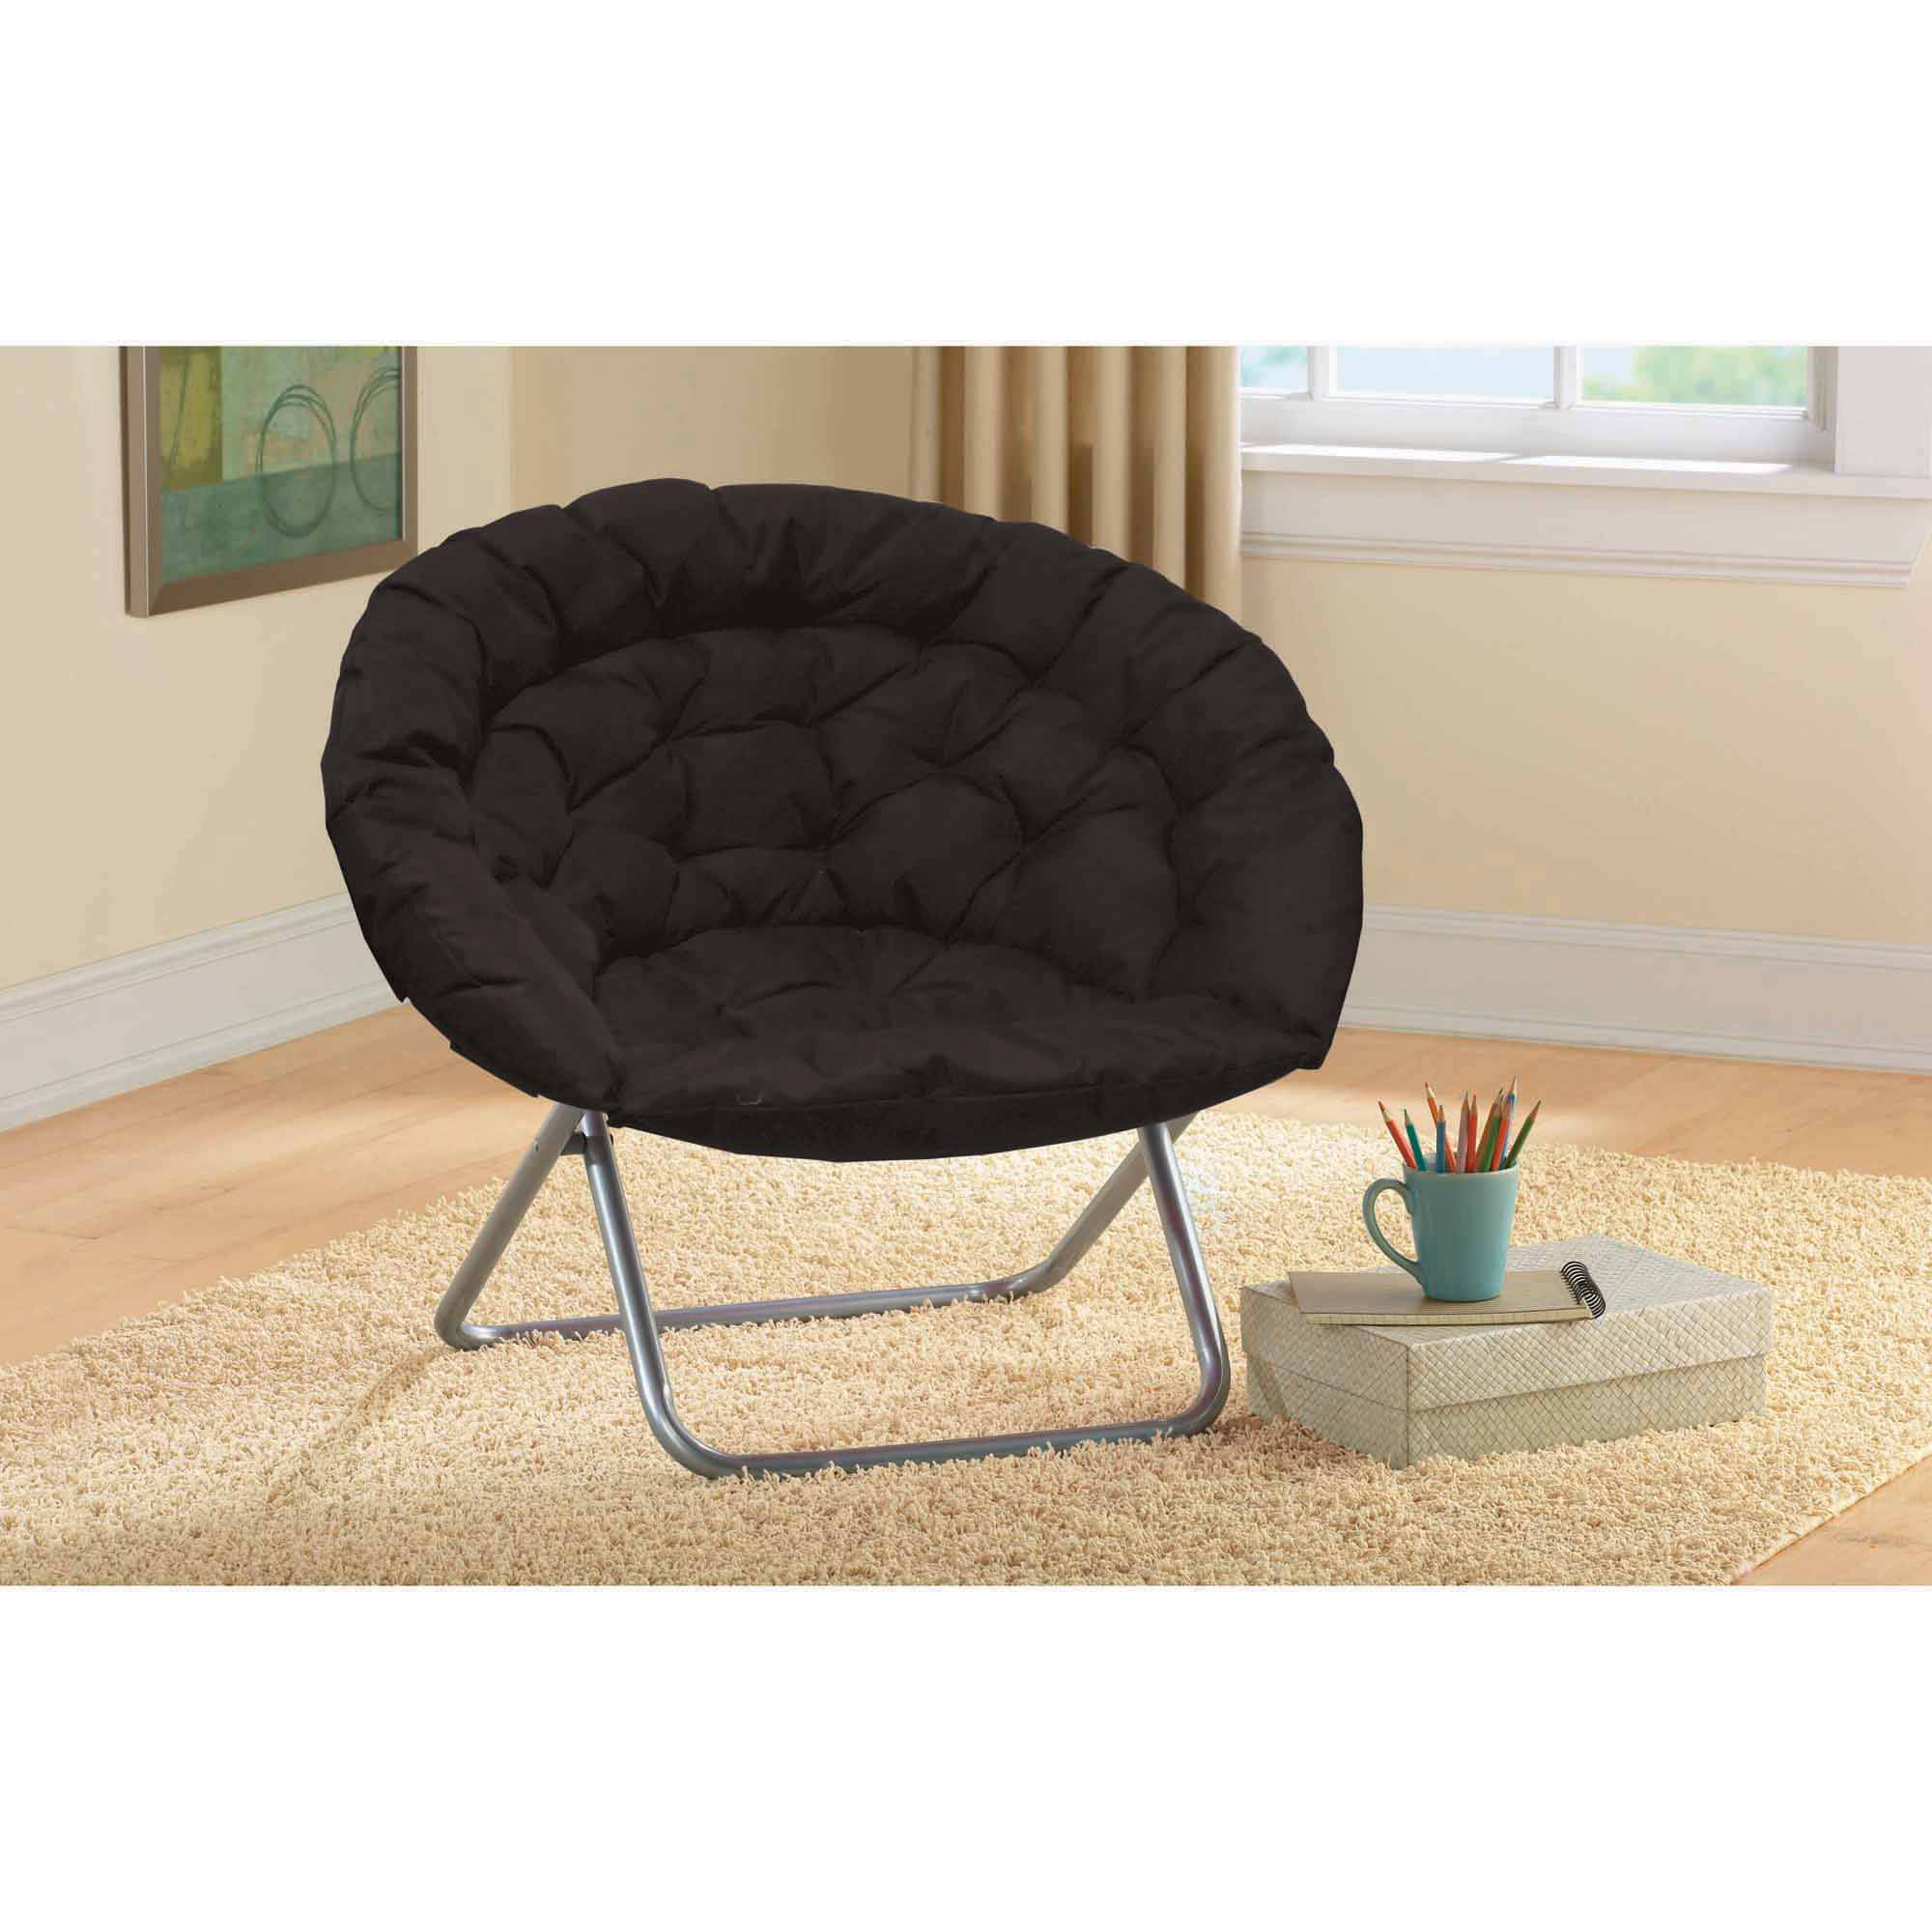 Oversized Moon Chair, Multiple Colors